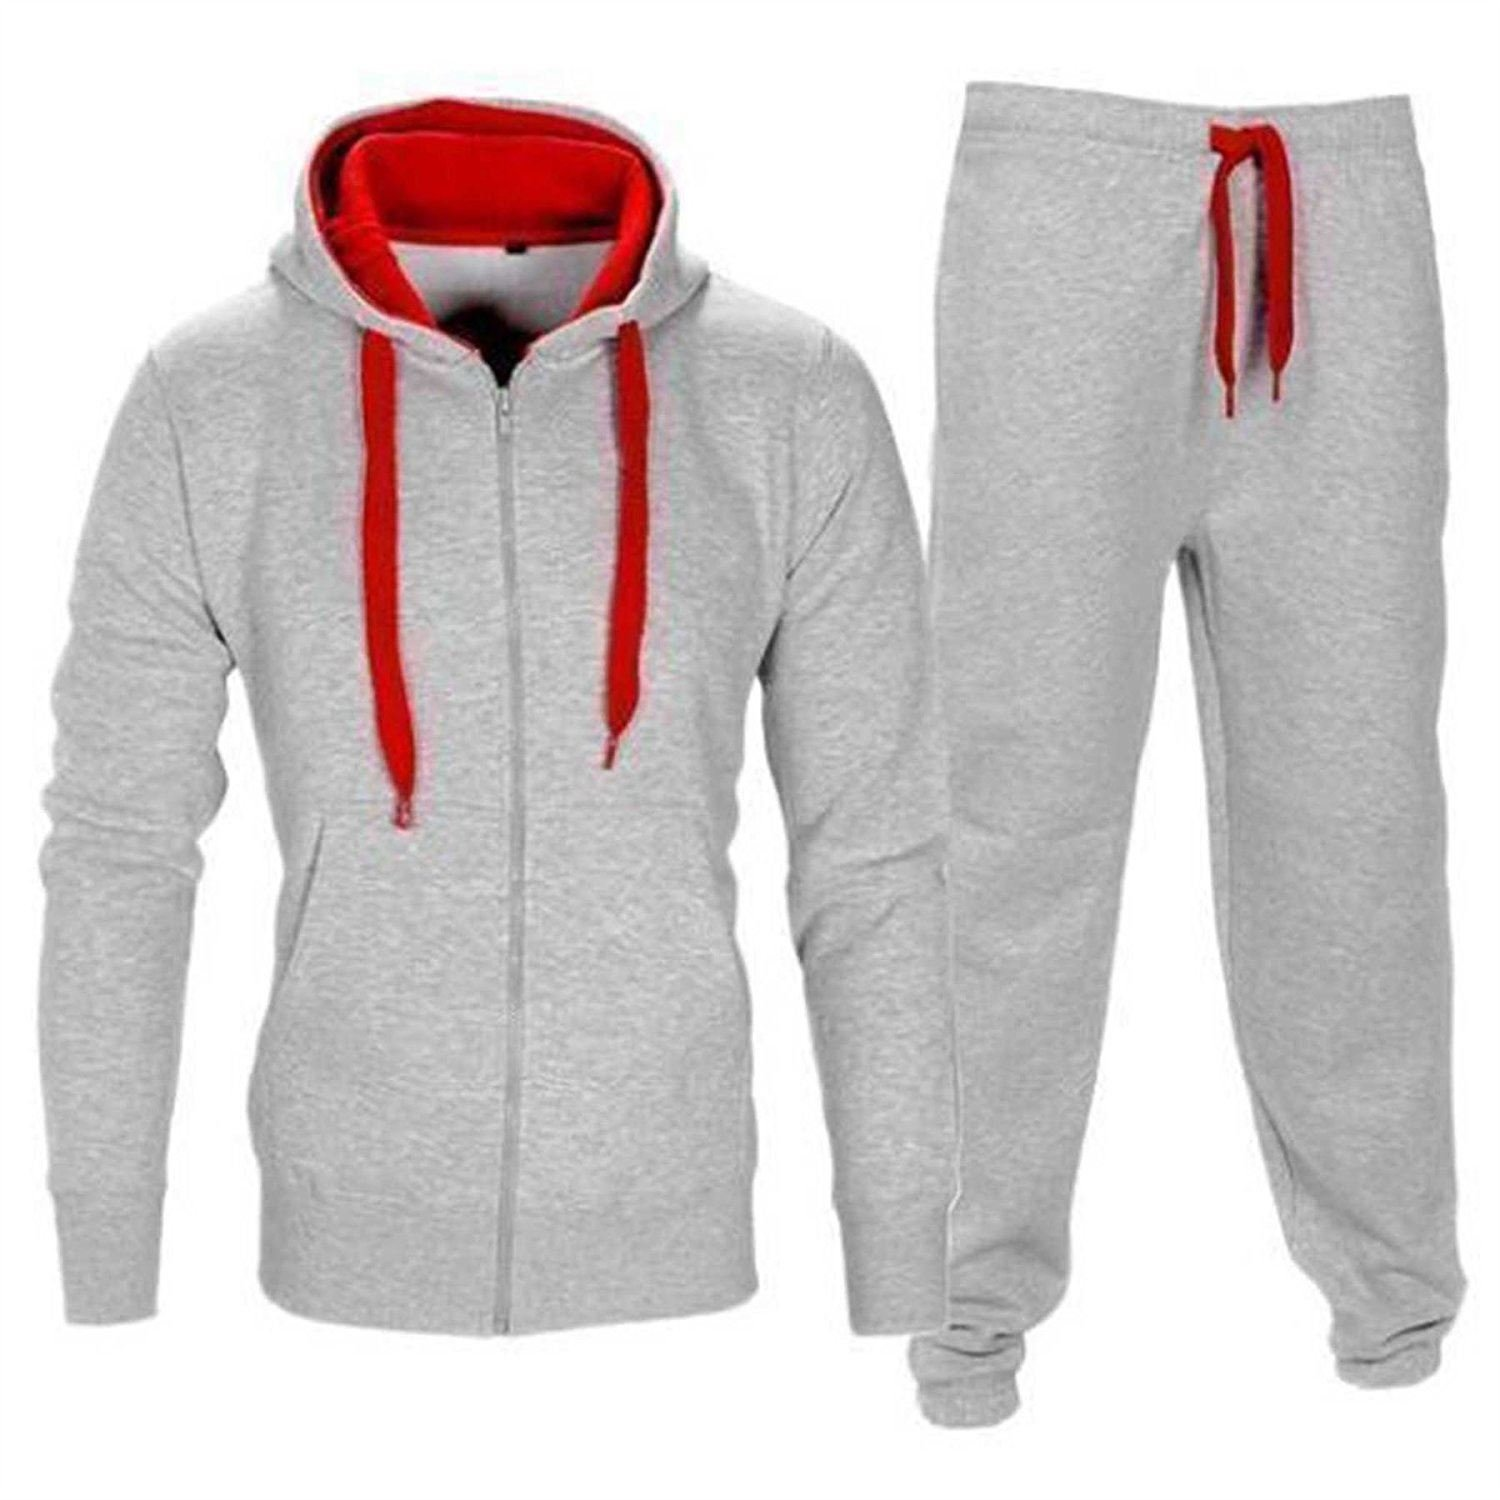 5901cc0fe Get Quotations · Kids Contrast Cord Fleece Full Zip Up Kids Tracksuit  Hoodie Gym Suit Jogging Joggers